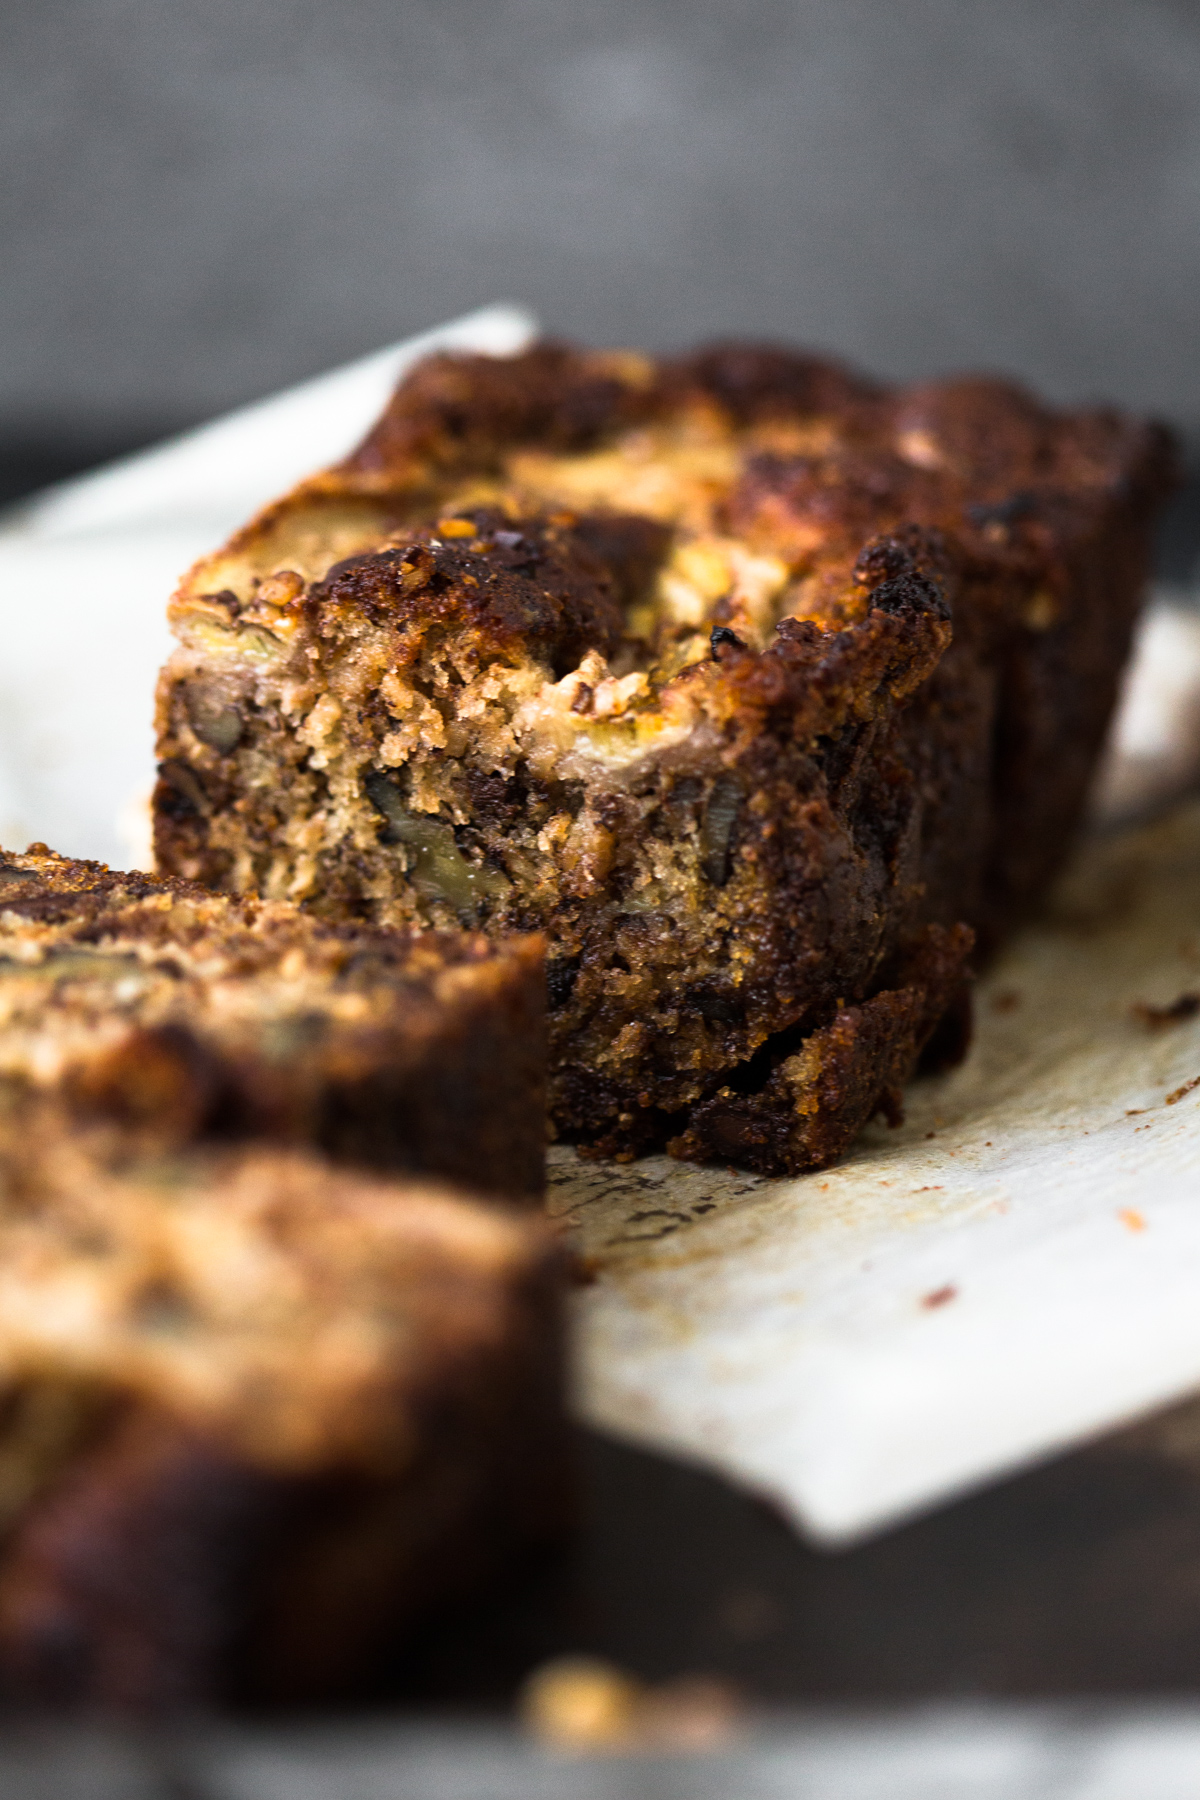 A delicious Vegan Banana Bread recipe loaded with Walnuts, Dark Chocolate and a Brown Sugar Cinnamon Swirl in the middle. Ready in under 1 hour. #bananabread #vegan #cinnamon #cinnamonswirl #quickbread #bananamuffins #veganbaking #veganbananabread #easy #simple #walnuts #chocolate #eggless #baking #dessert #breakfast